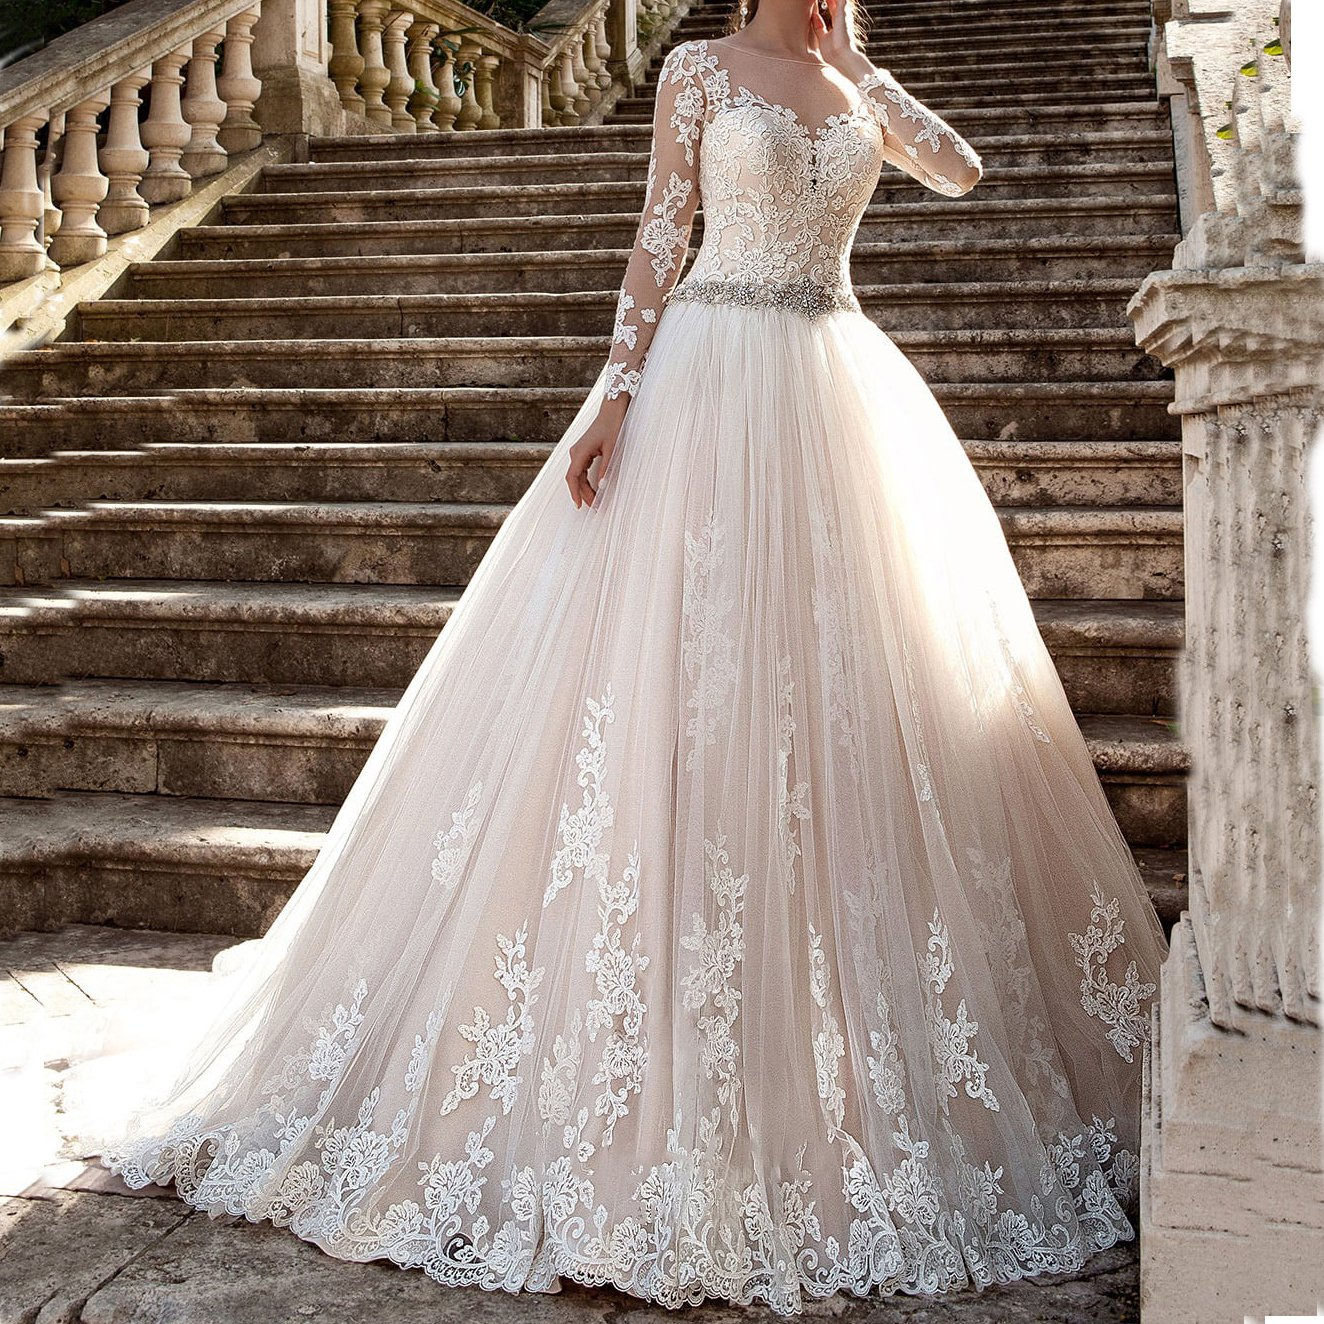 westcorler Luxury Wedding Dress Long Sleeves Ball Gown Lace Wedding Dresses (us14, Ivory) by westcorler (Image #2)